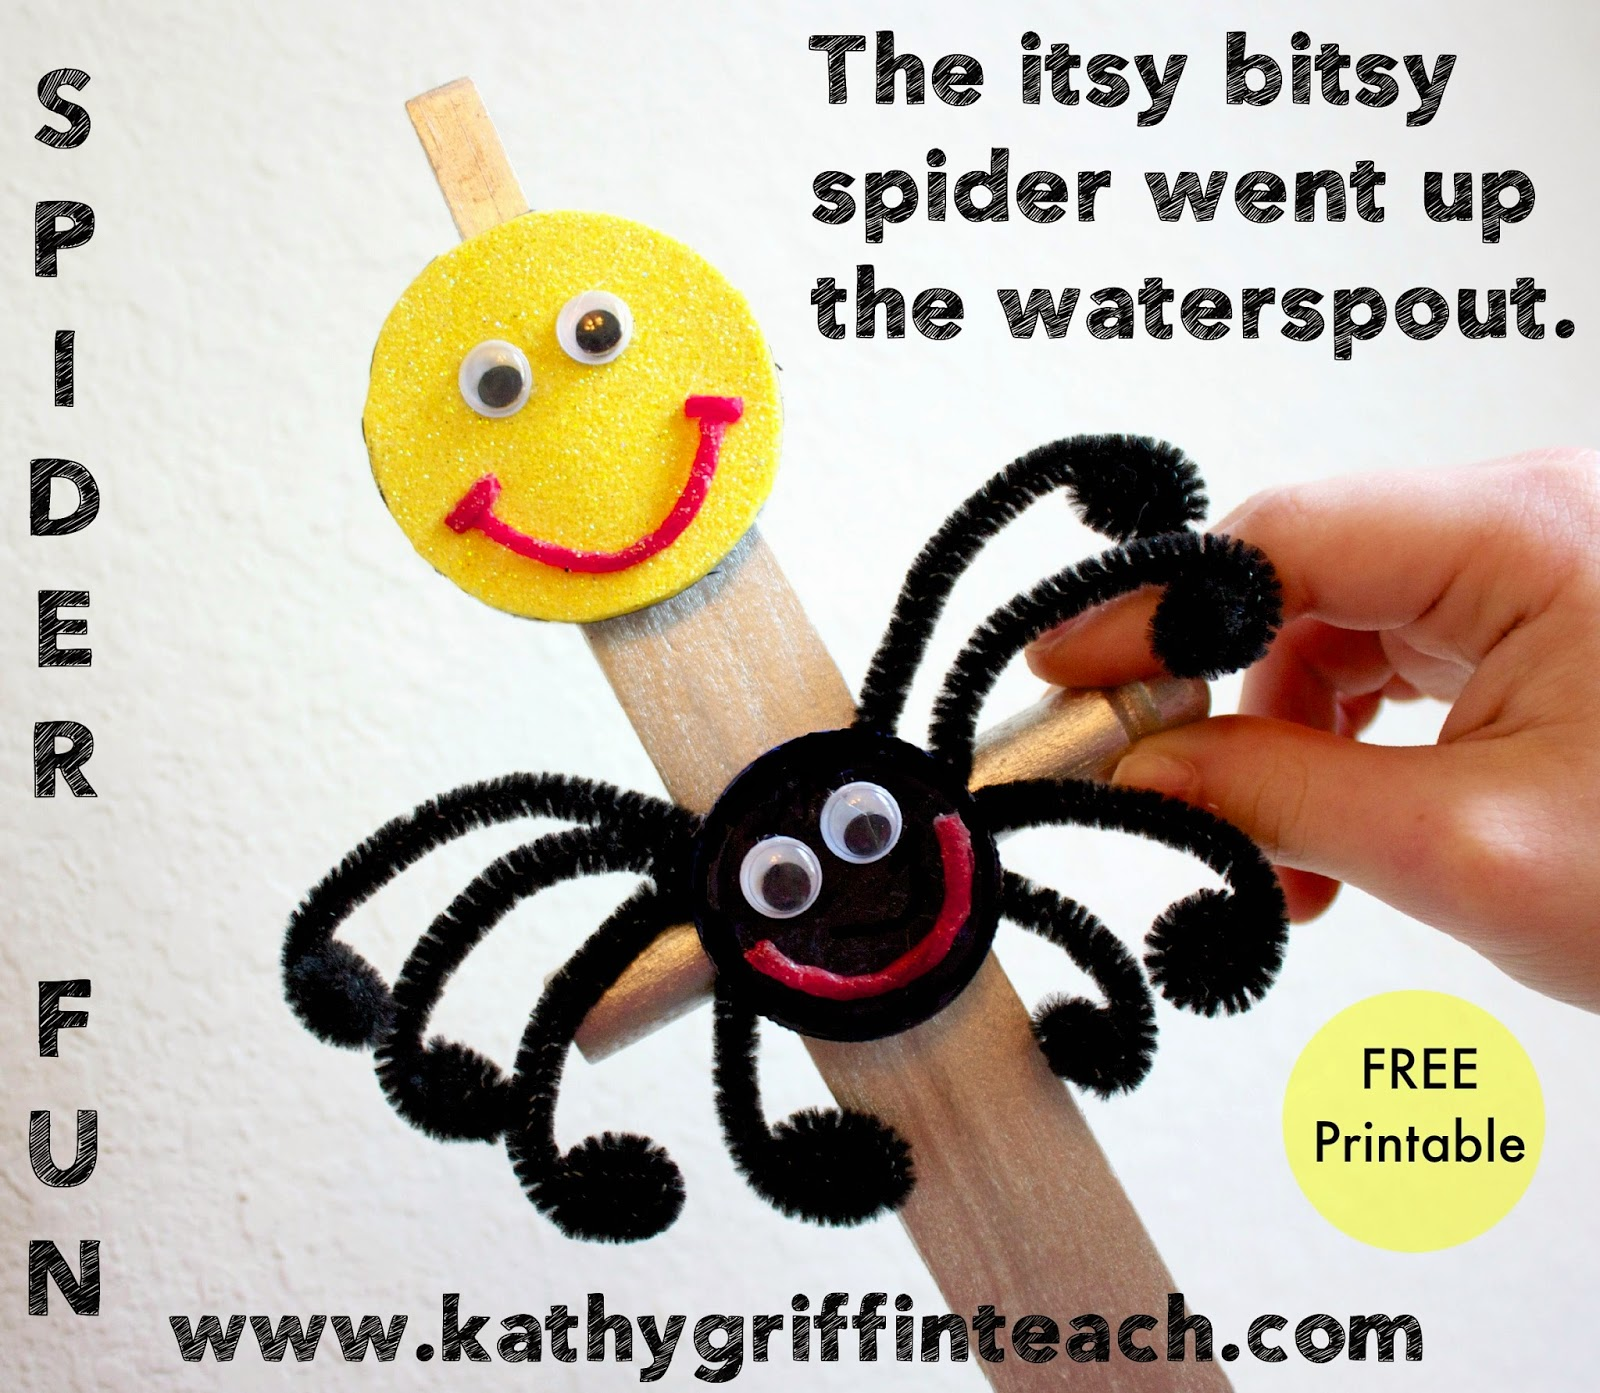 photograph regarding Itsy Bitsy Spider Printable referred to as Kathy Griffins Instruction Tips: Itsy Bitsy Spider